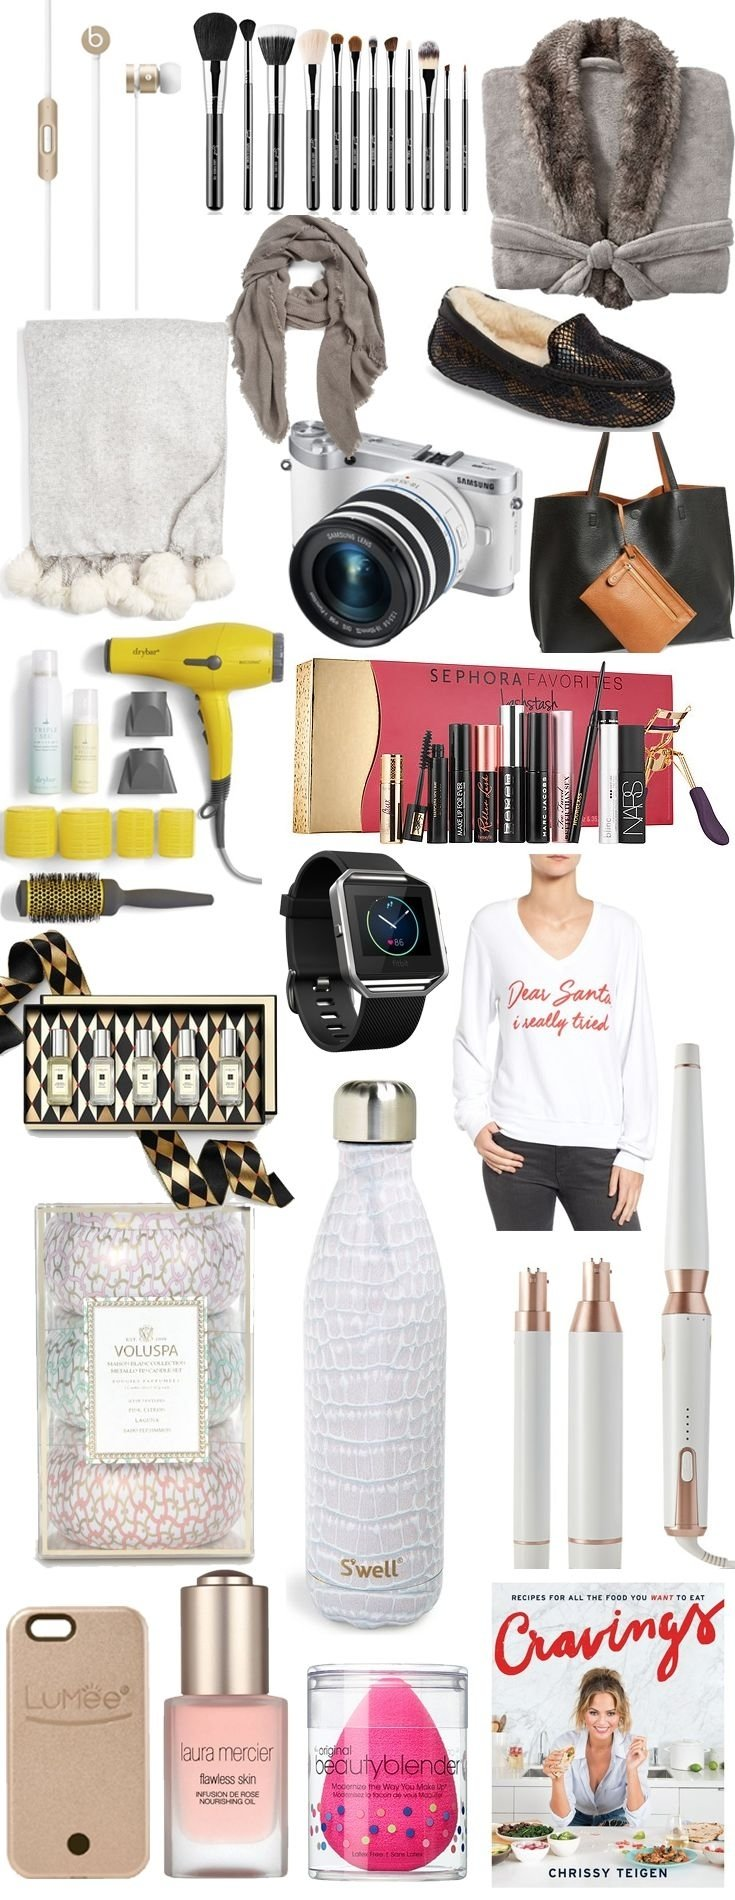 10 Attractive Great Gift Ideas For Her 324 best gift ideas for women in their 20s images on pinterest